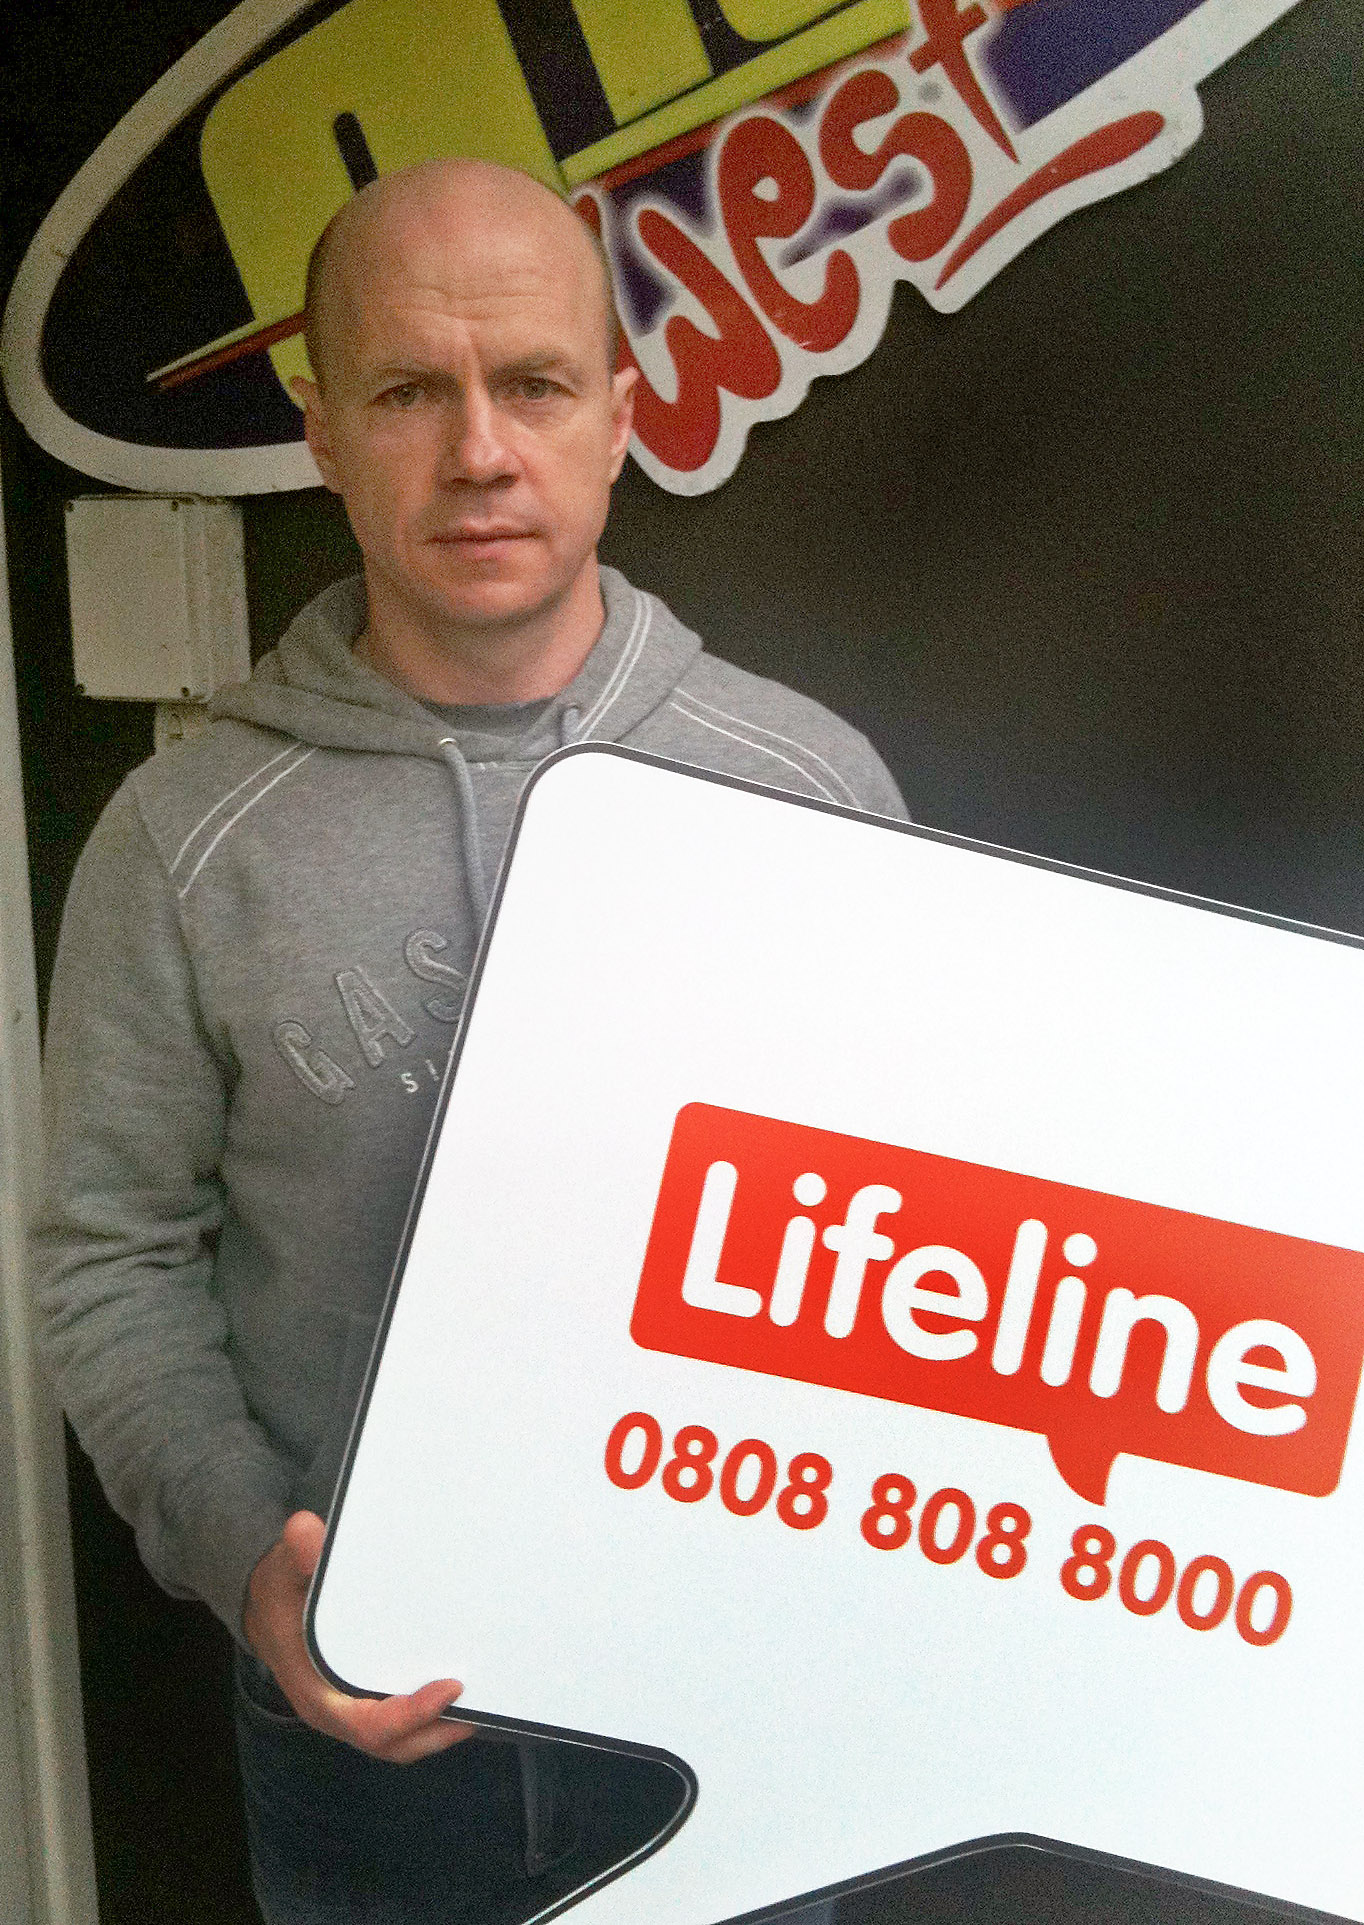 SPORTS STARS TACKLE MEN'S RELUCTANCE TO SEEK HELP WITH NEW LIFELINE CAMPAIGN